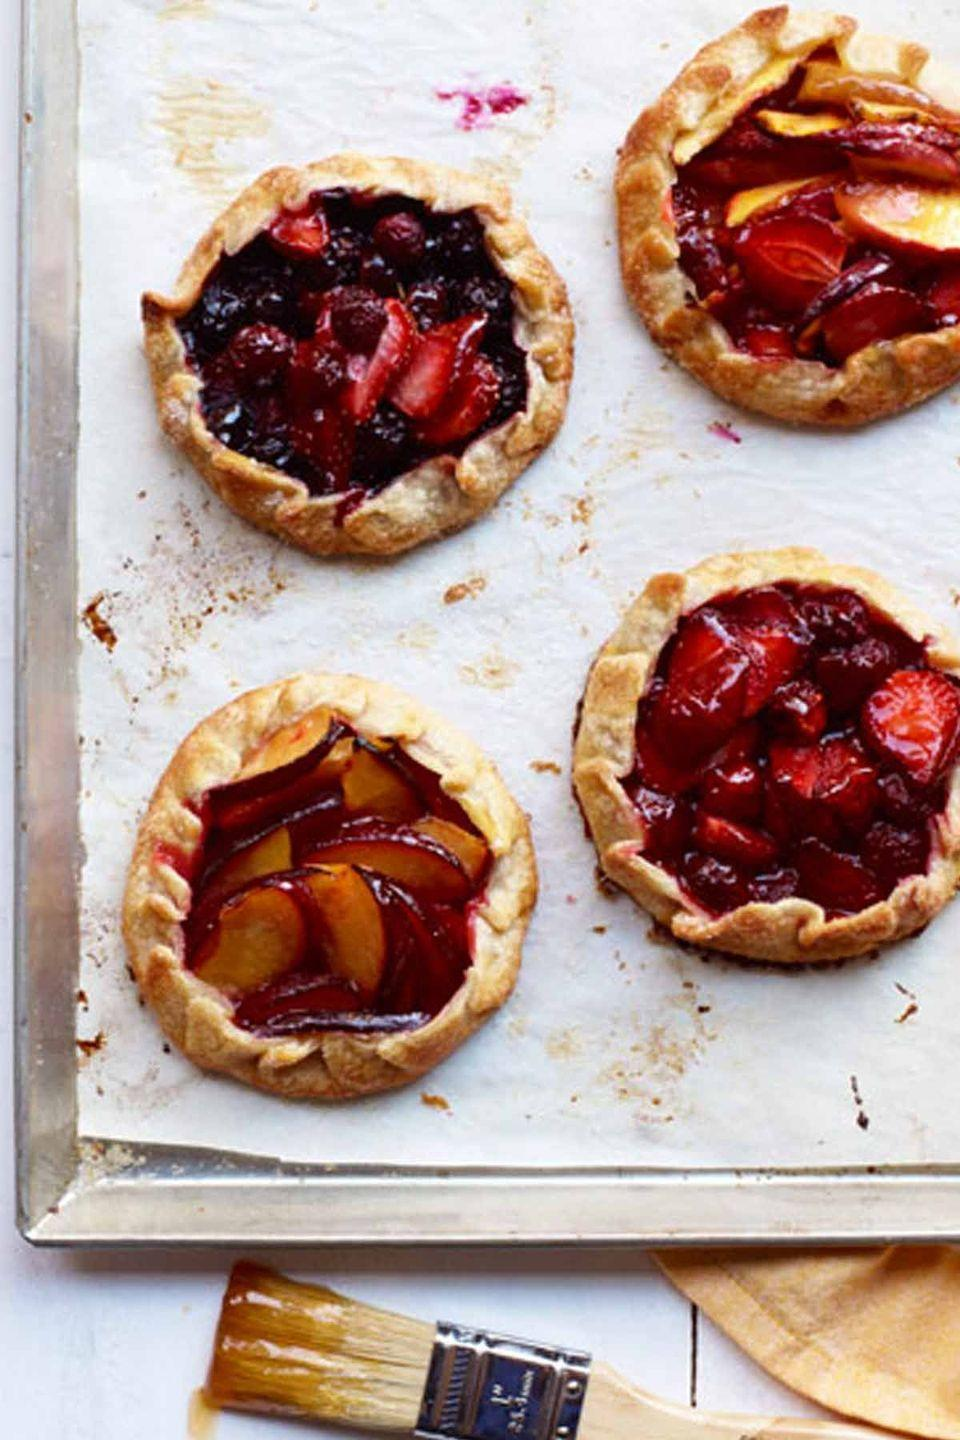 """<p>Pick out your favorite summer fruits to fill these irresistible tarts. Raspberries, blueberries, strawberries, you name it!</p><p><strong><em><a href=""""https://www.womansday.com/food-recipes/food-drinks/recipes/a12133/summer-fruit-tarts-recipe-wdy0712/"""" rel=""""nofollow noopener"""" target=""""_blank"""" data-ylk=""""slk:Get the Summer Fruit Tarts recipe."""" class=""""link rapid-noclick-resp"""">Get the Summer Fruit Tarts recipe. </a></em></strong><br></p>"""